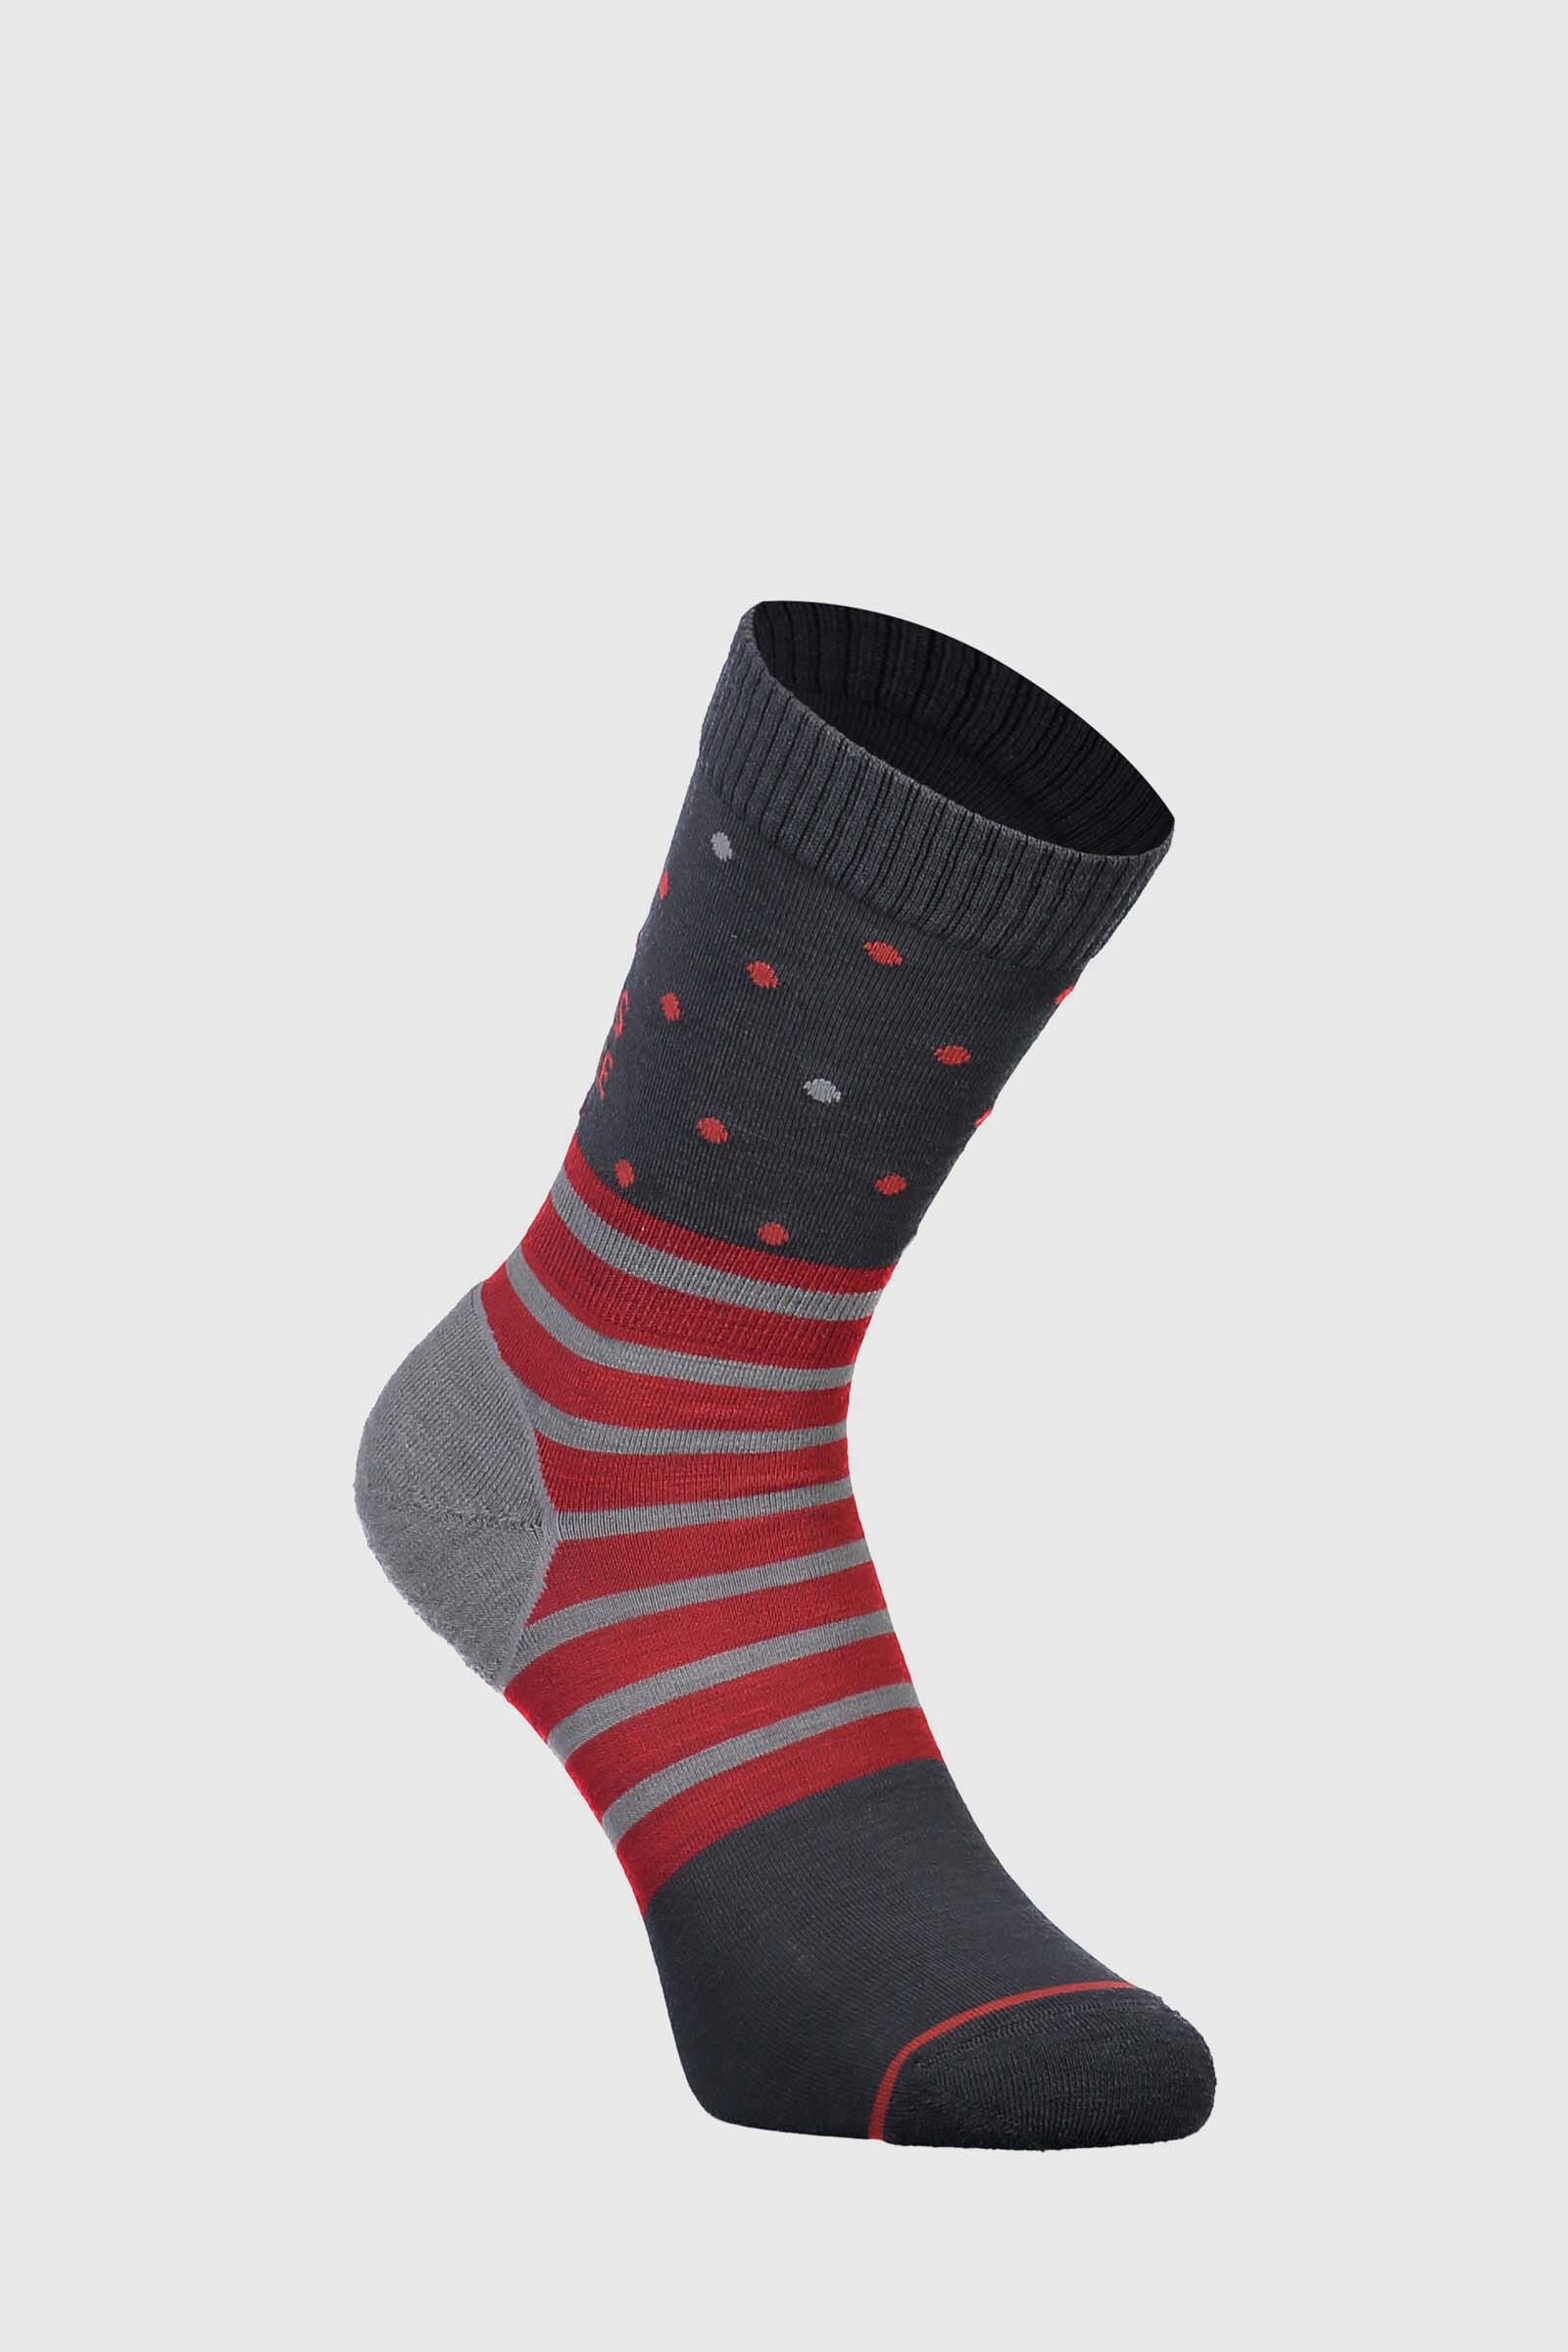 All Rounder Crew Sock - Poppy / Charcoal